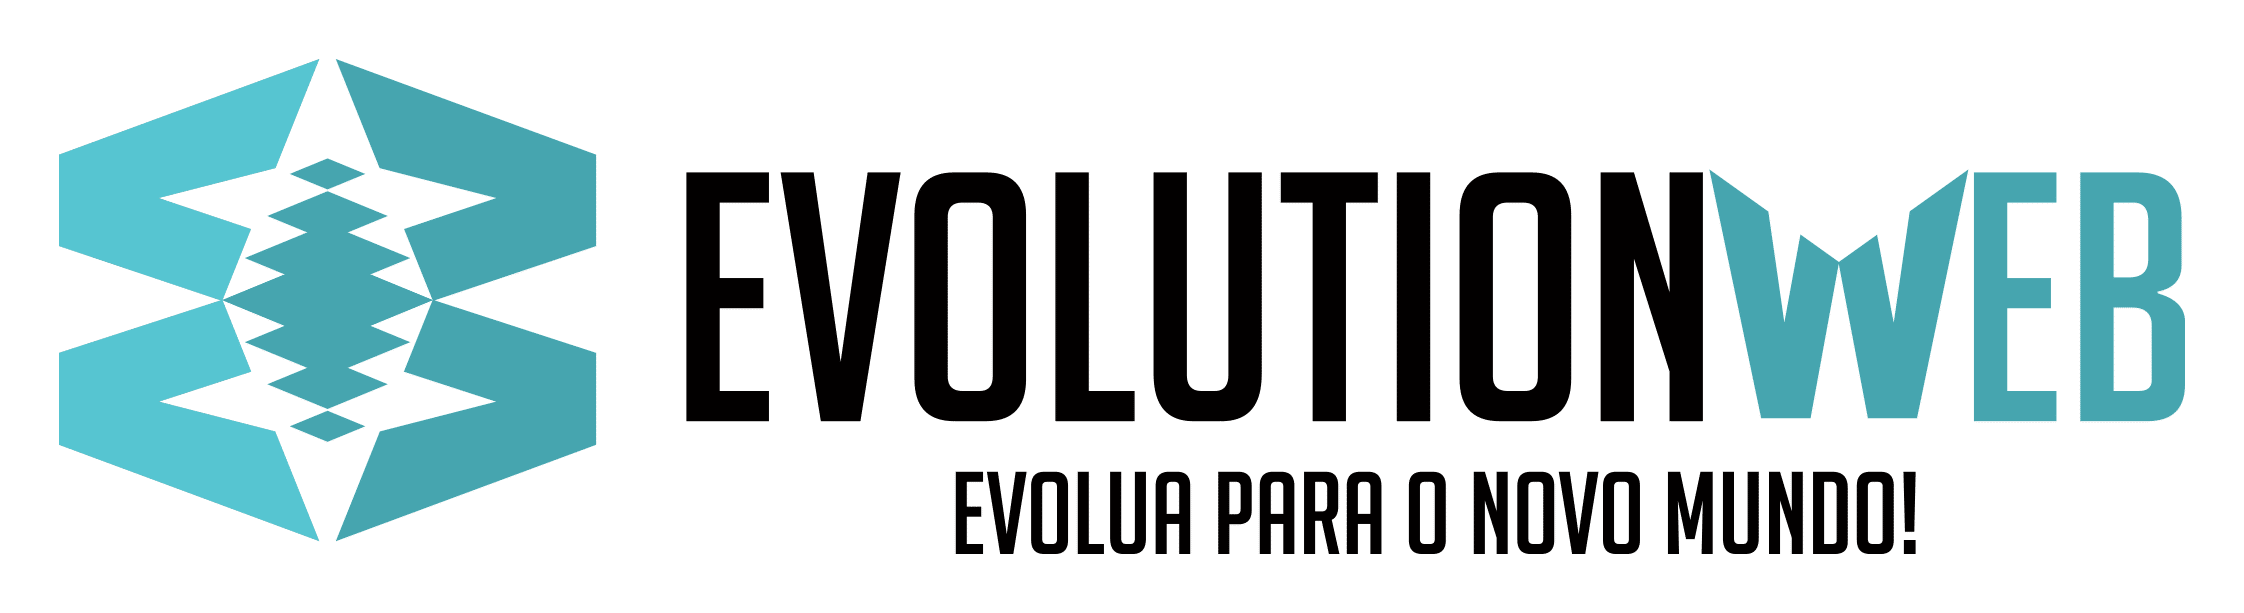 logo-evolutionweb-2